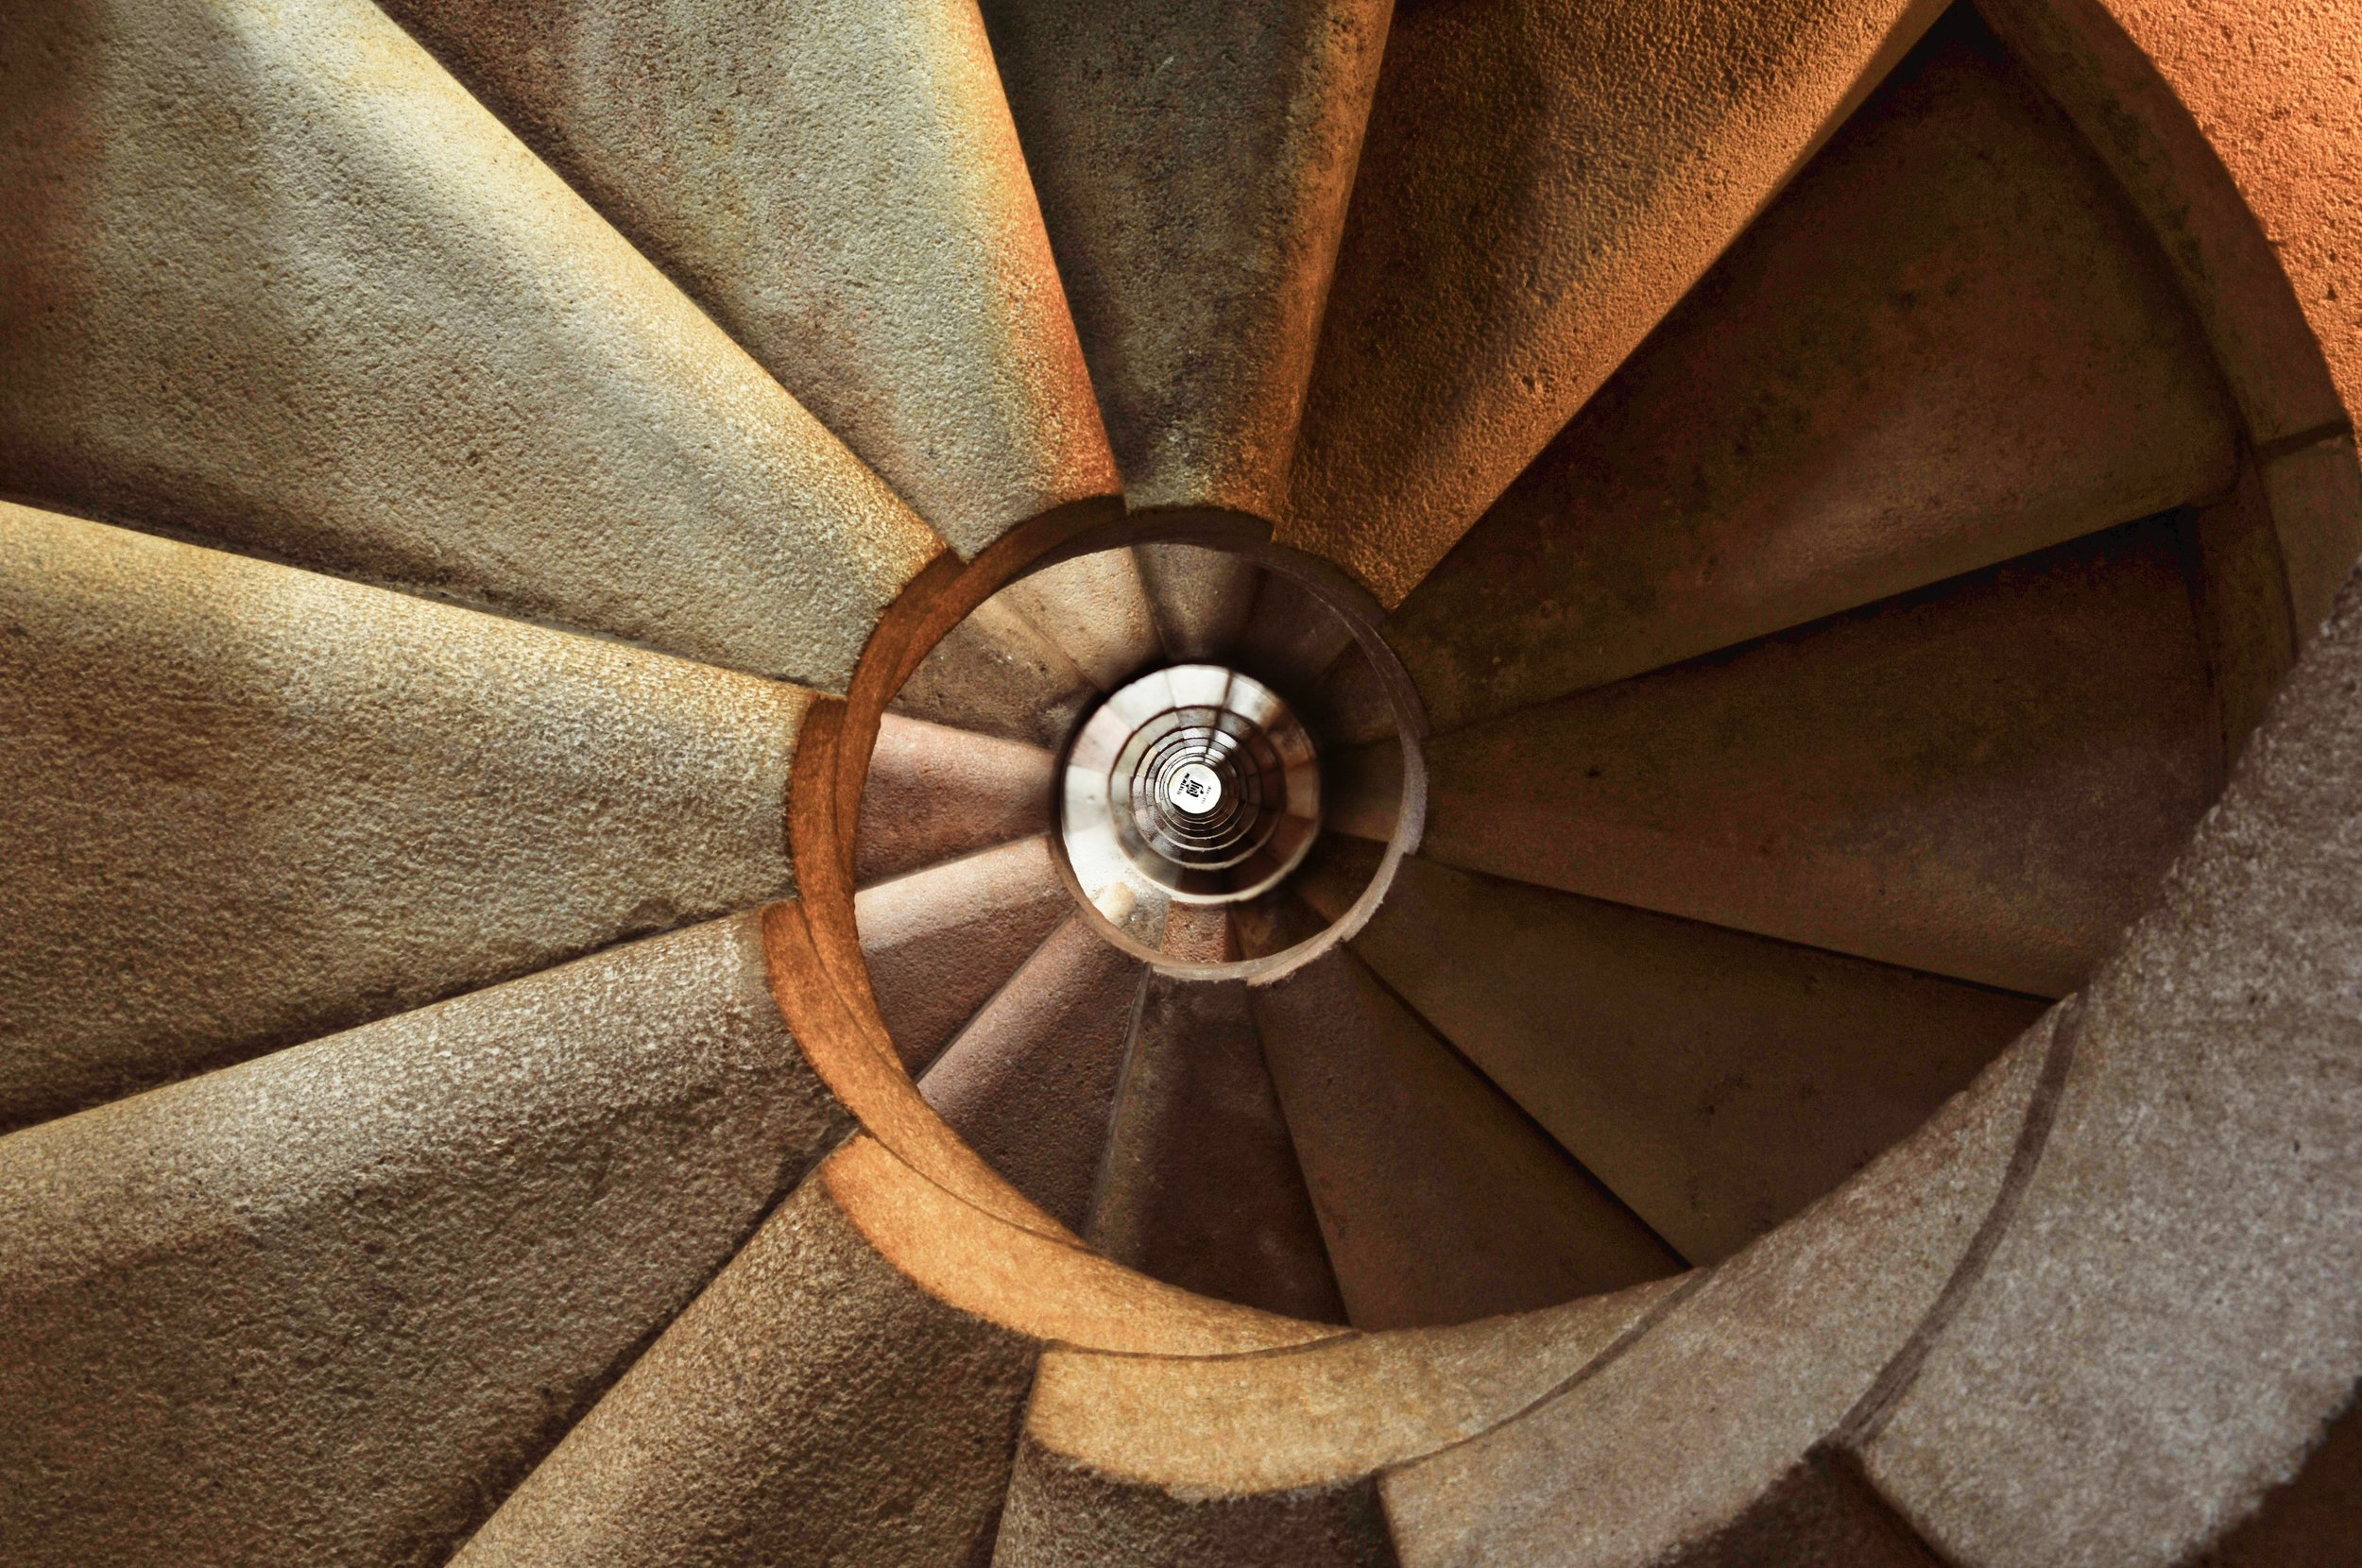 staircase-spiral-architecture-interior-39656.jpeg